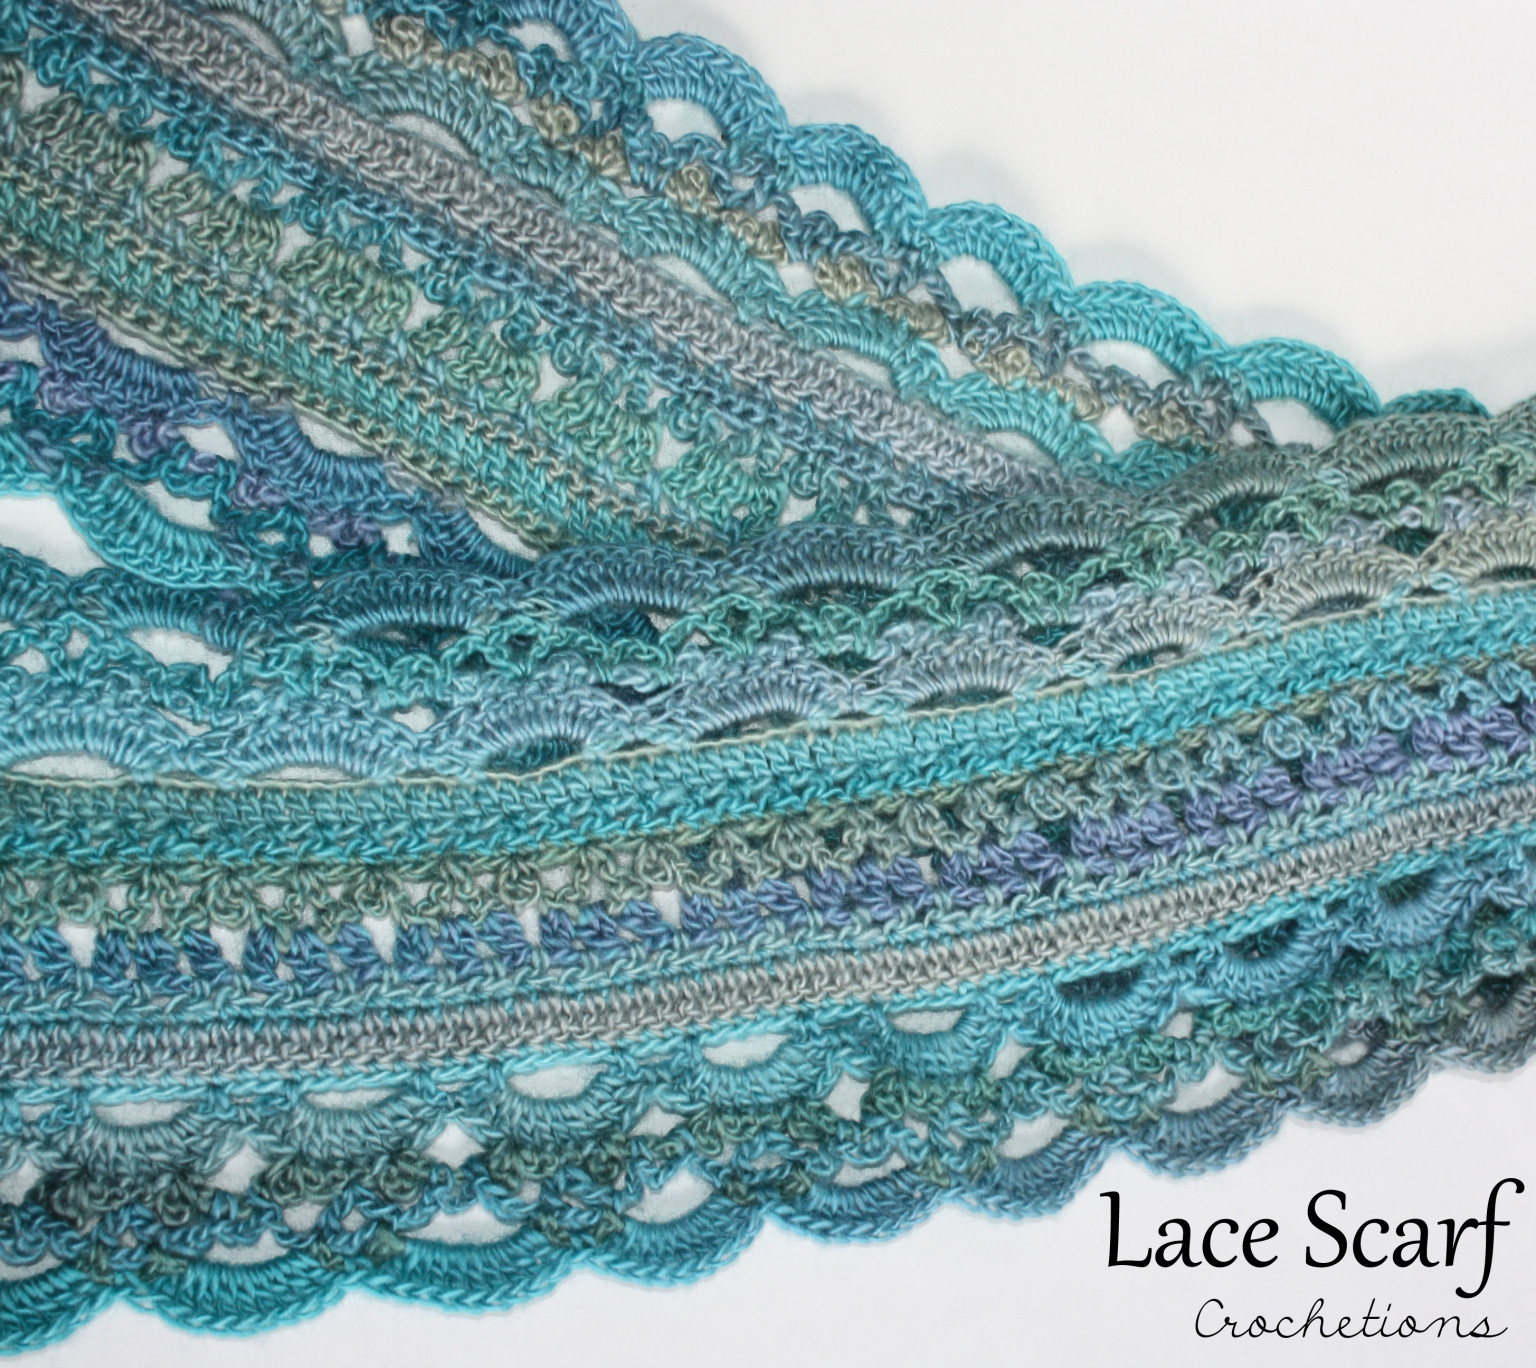 Crochet Lace Scarf Archives Crochetions